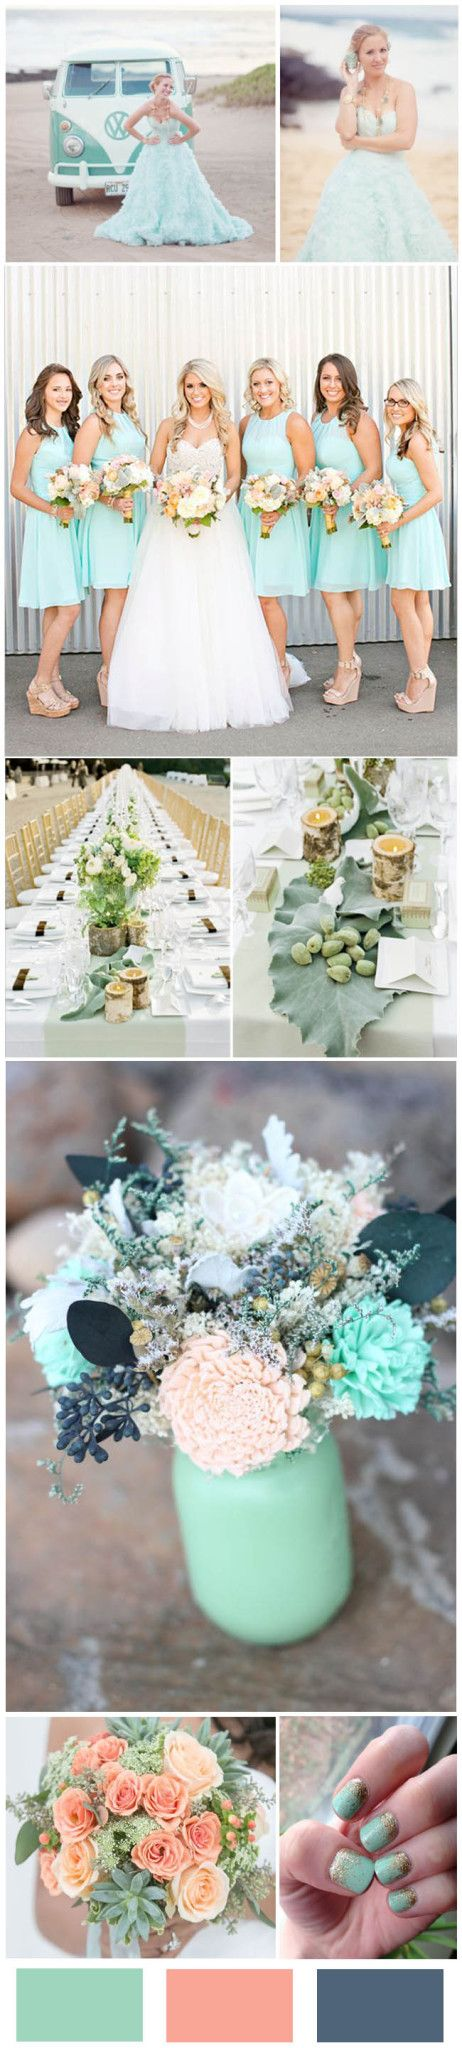 30 Mint Wedding Color Ideas For The Bride To Be | Http://www